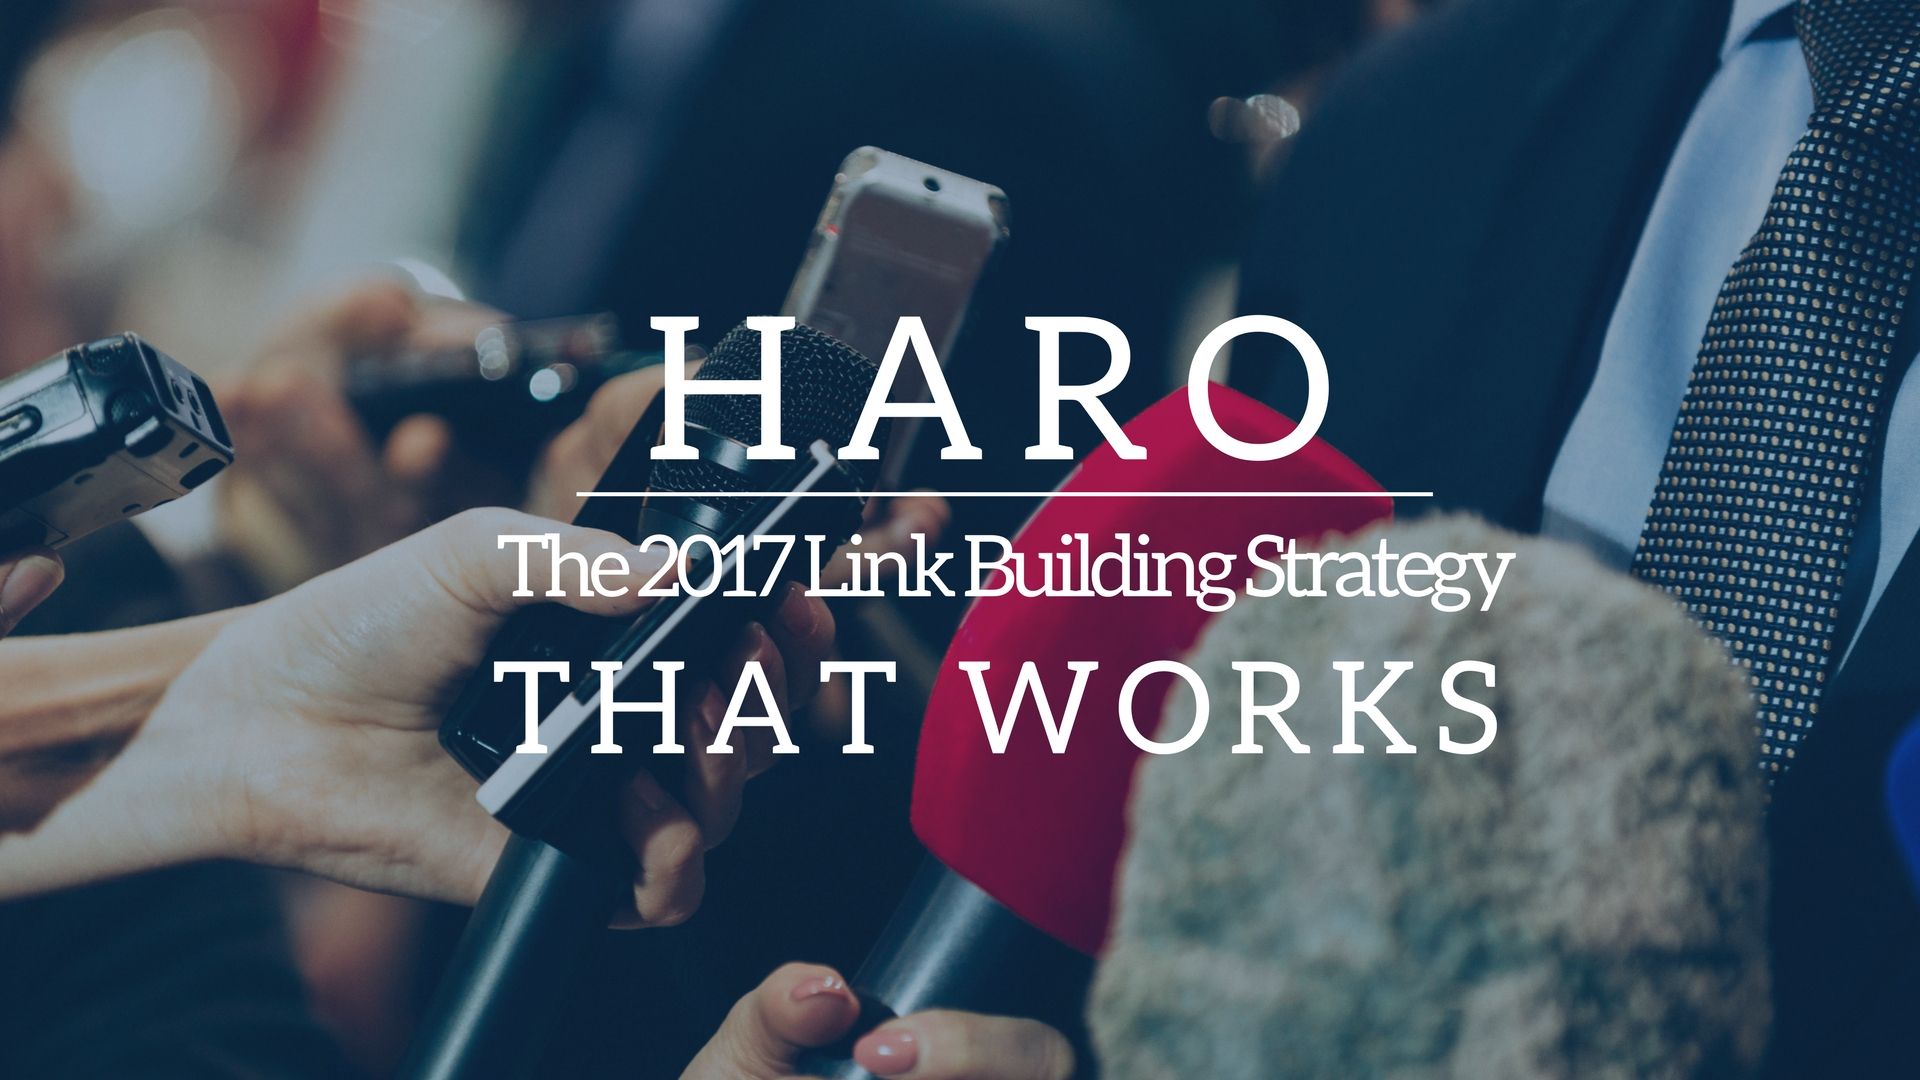 HARO: The 2017 Link Building Strategy that Works